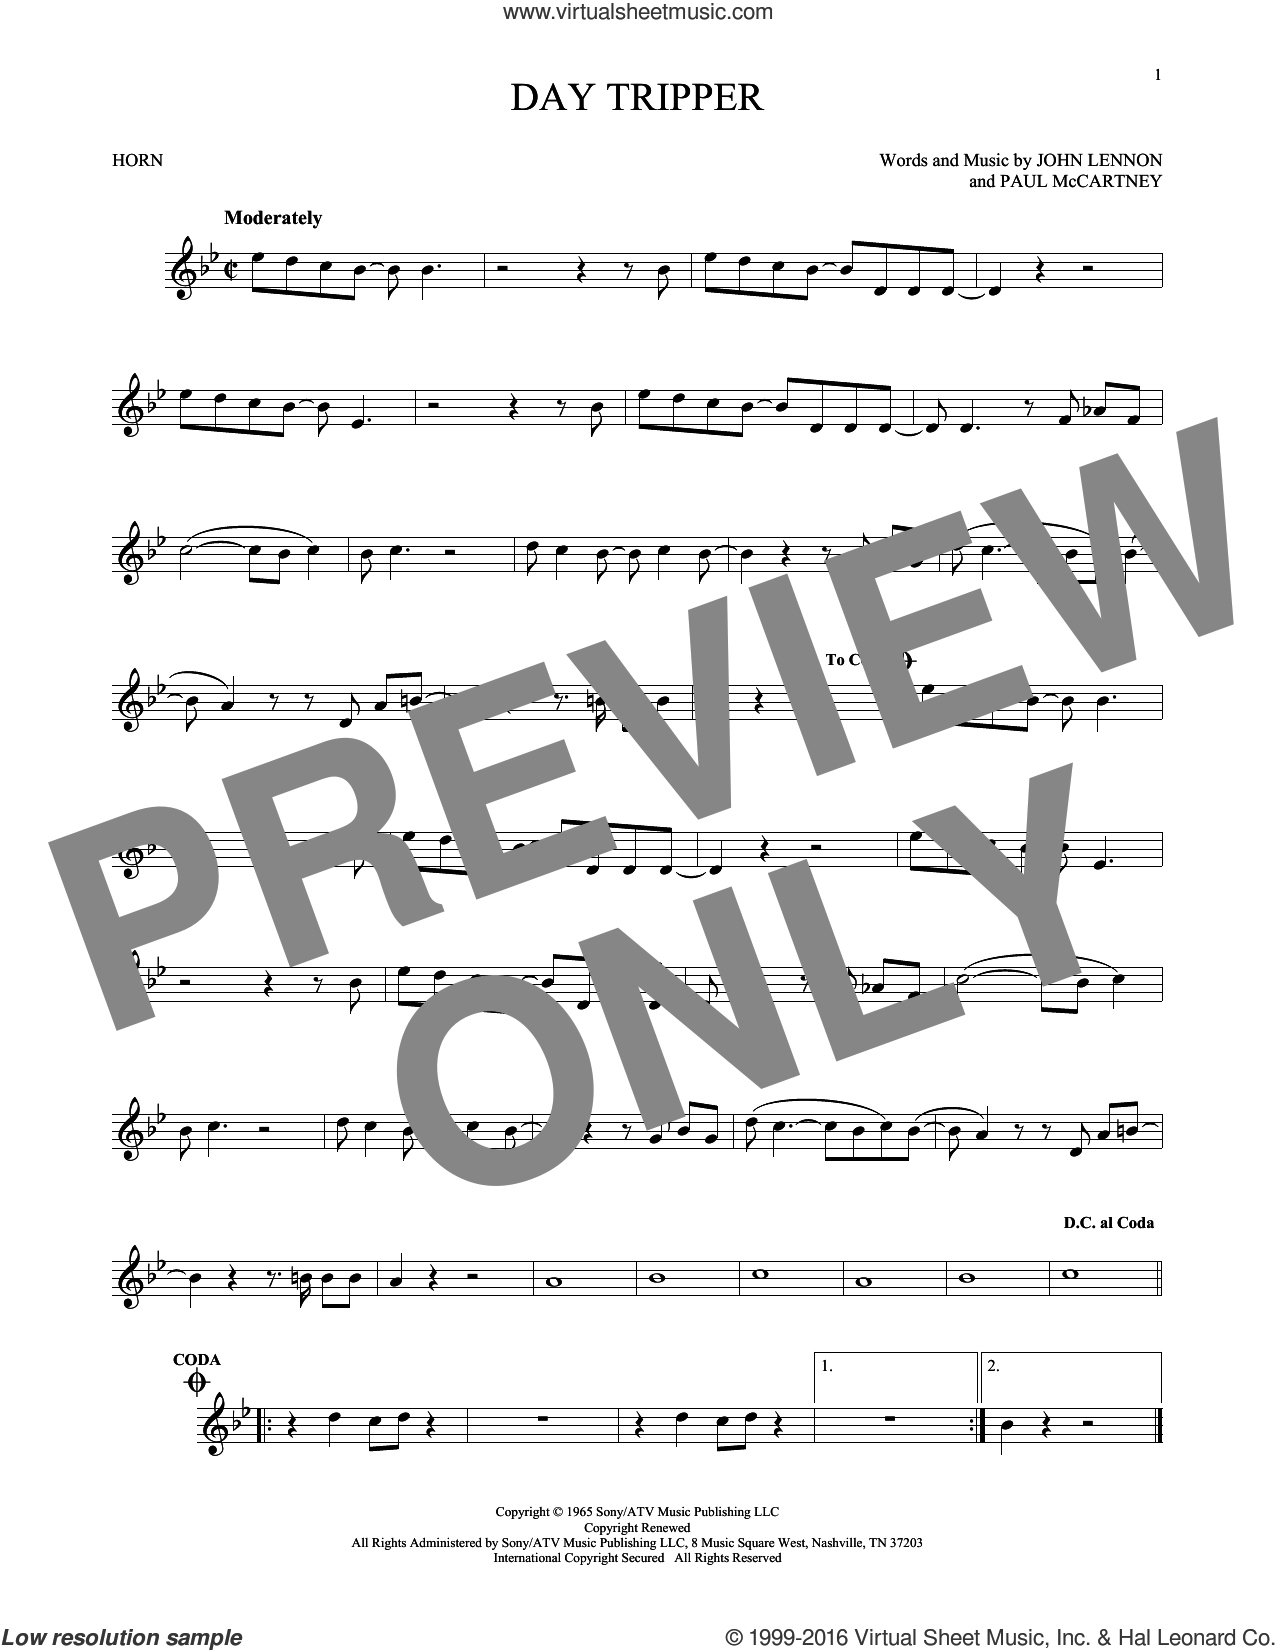 Day Tripper sheet music for horn solo by The Beatles, John Lennon and Paul McCartney, intermediate skill level